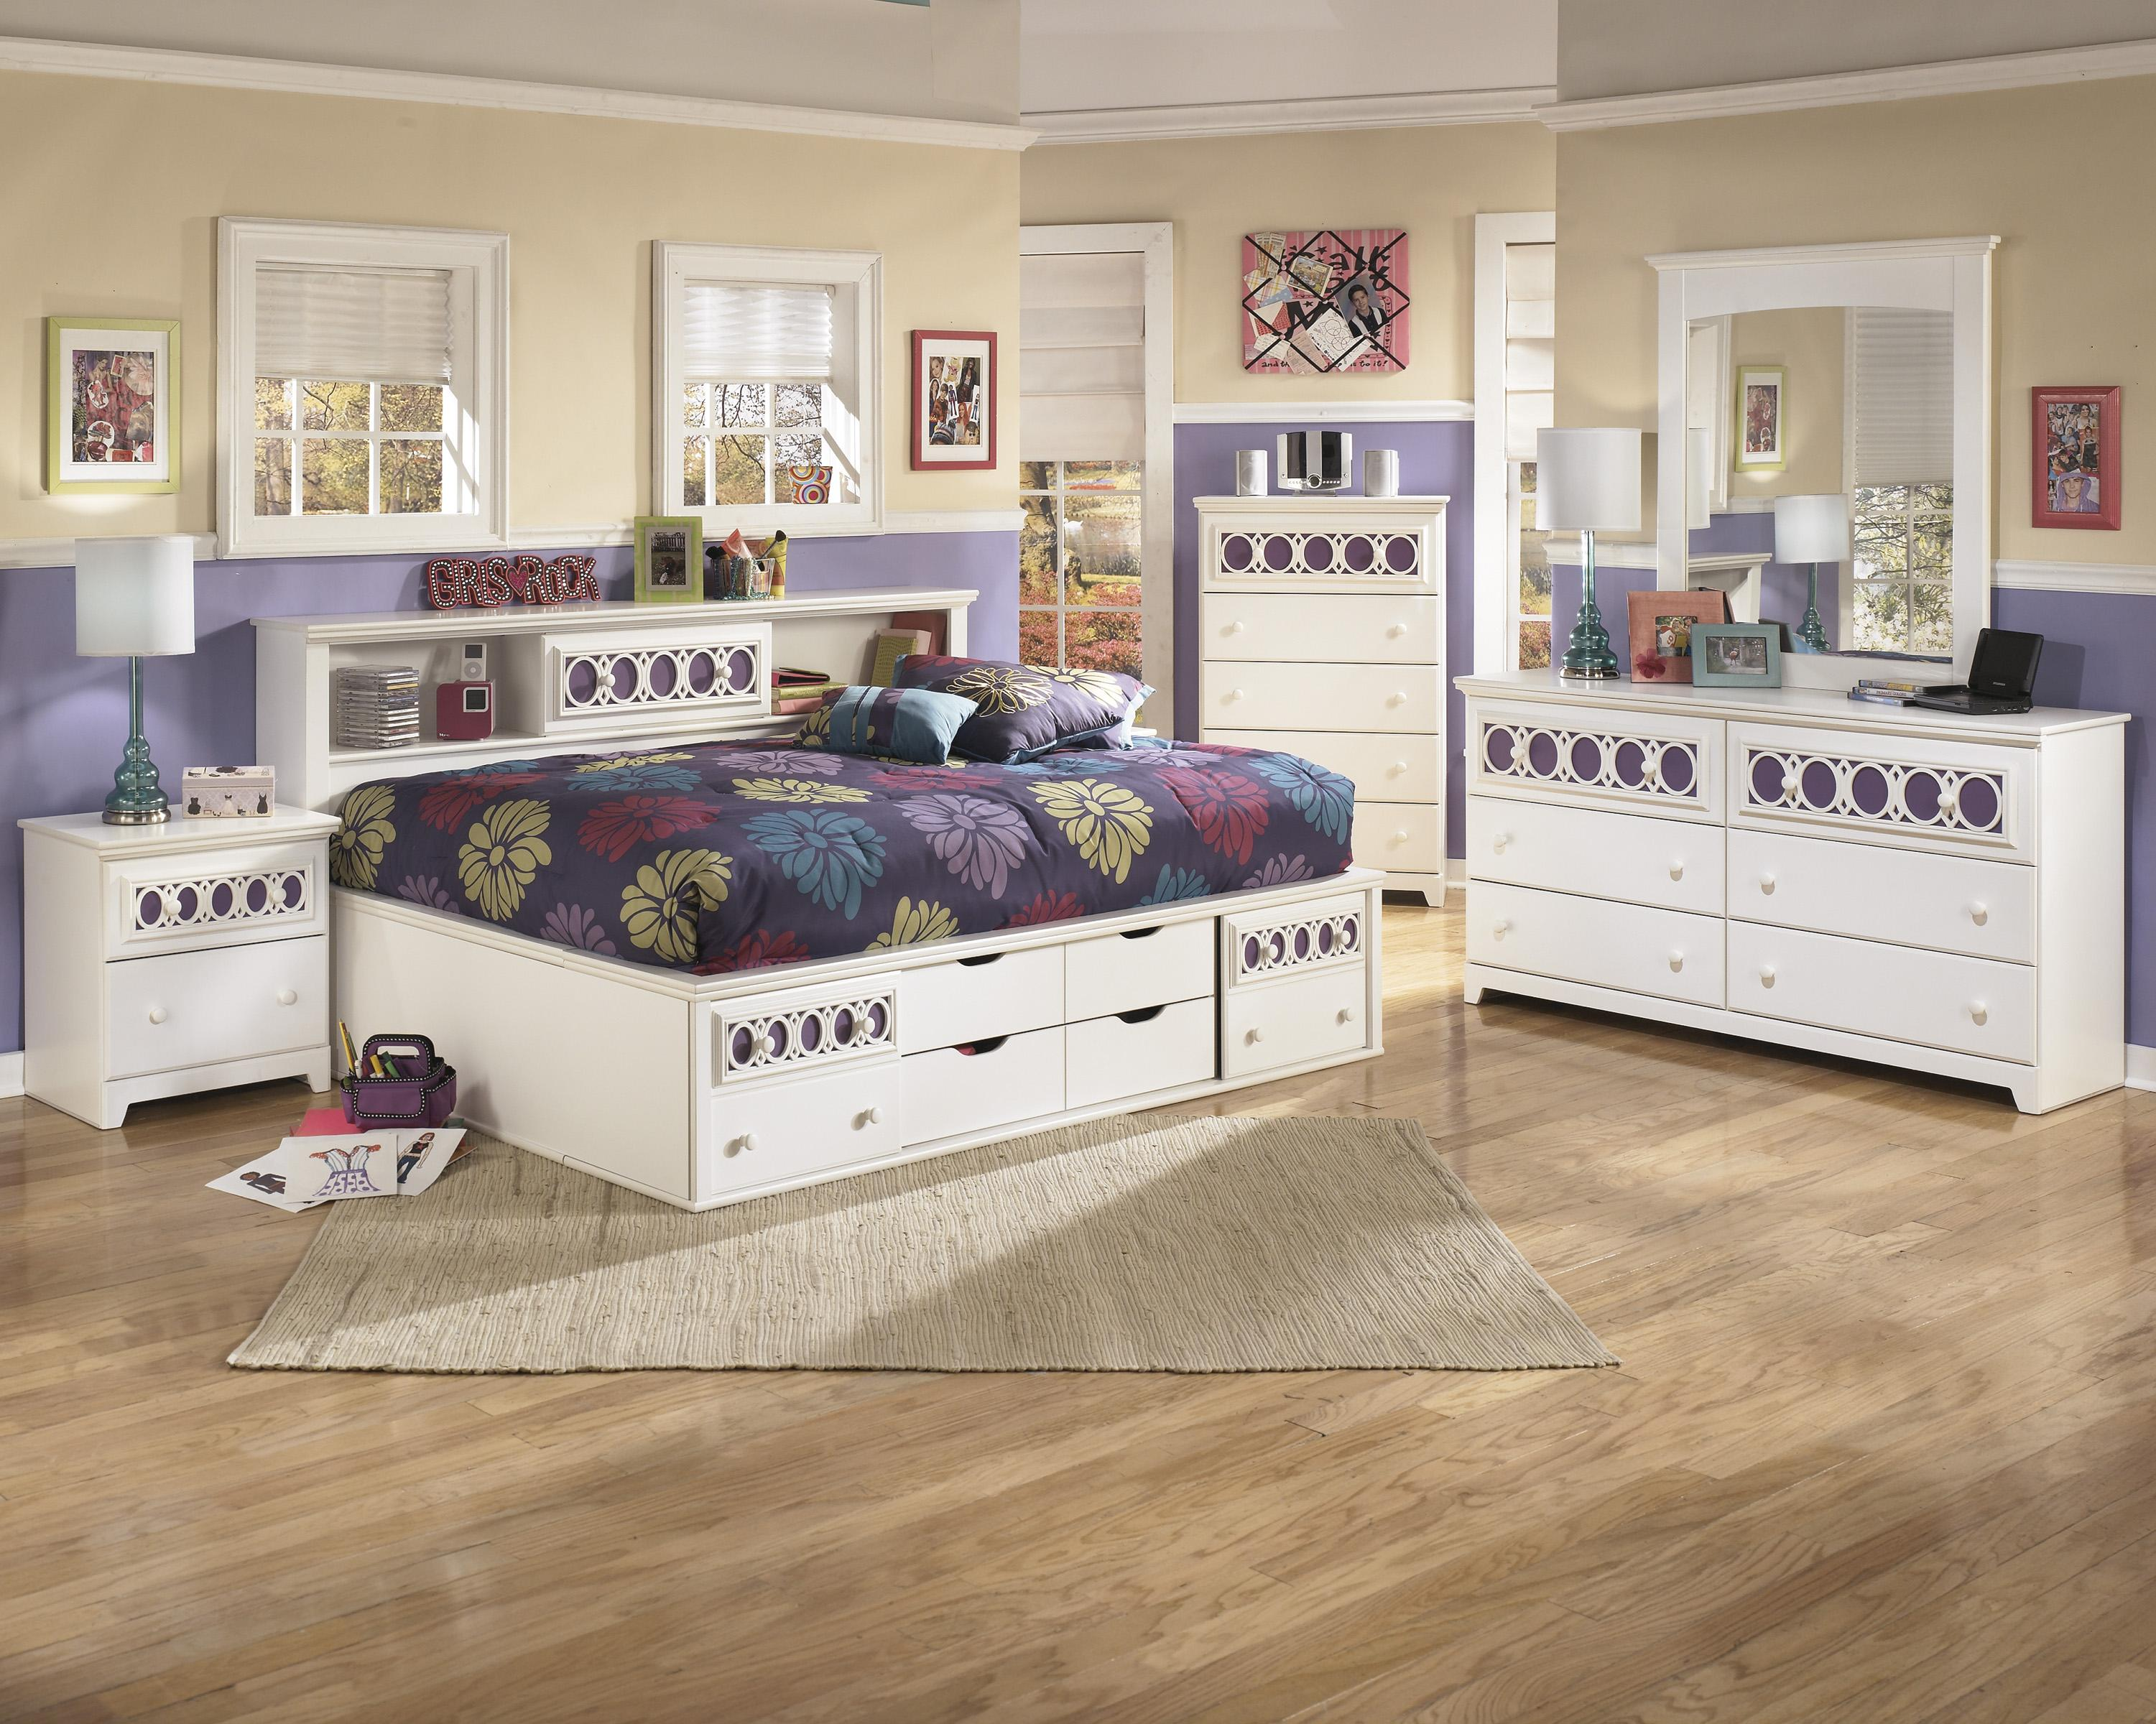 full bedroom group low price guarantee badge by signature design by ashley